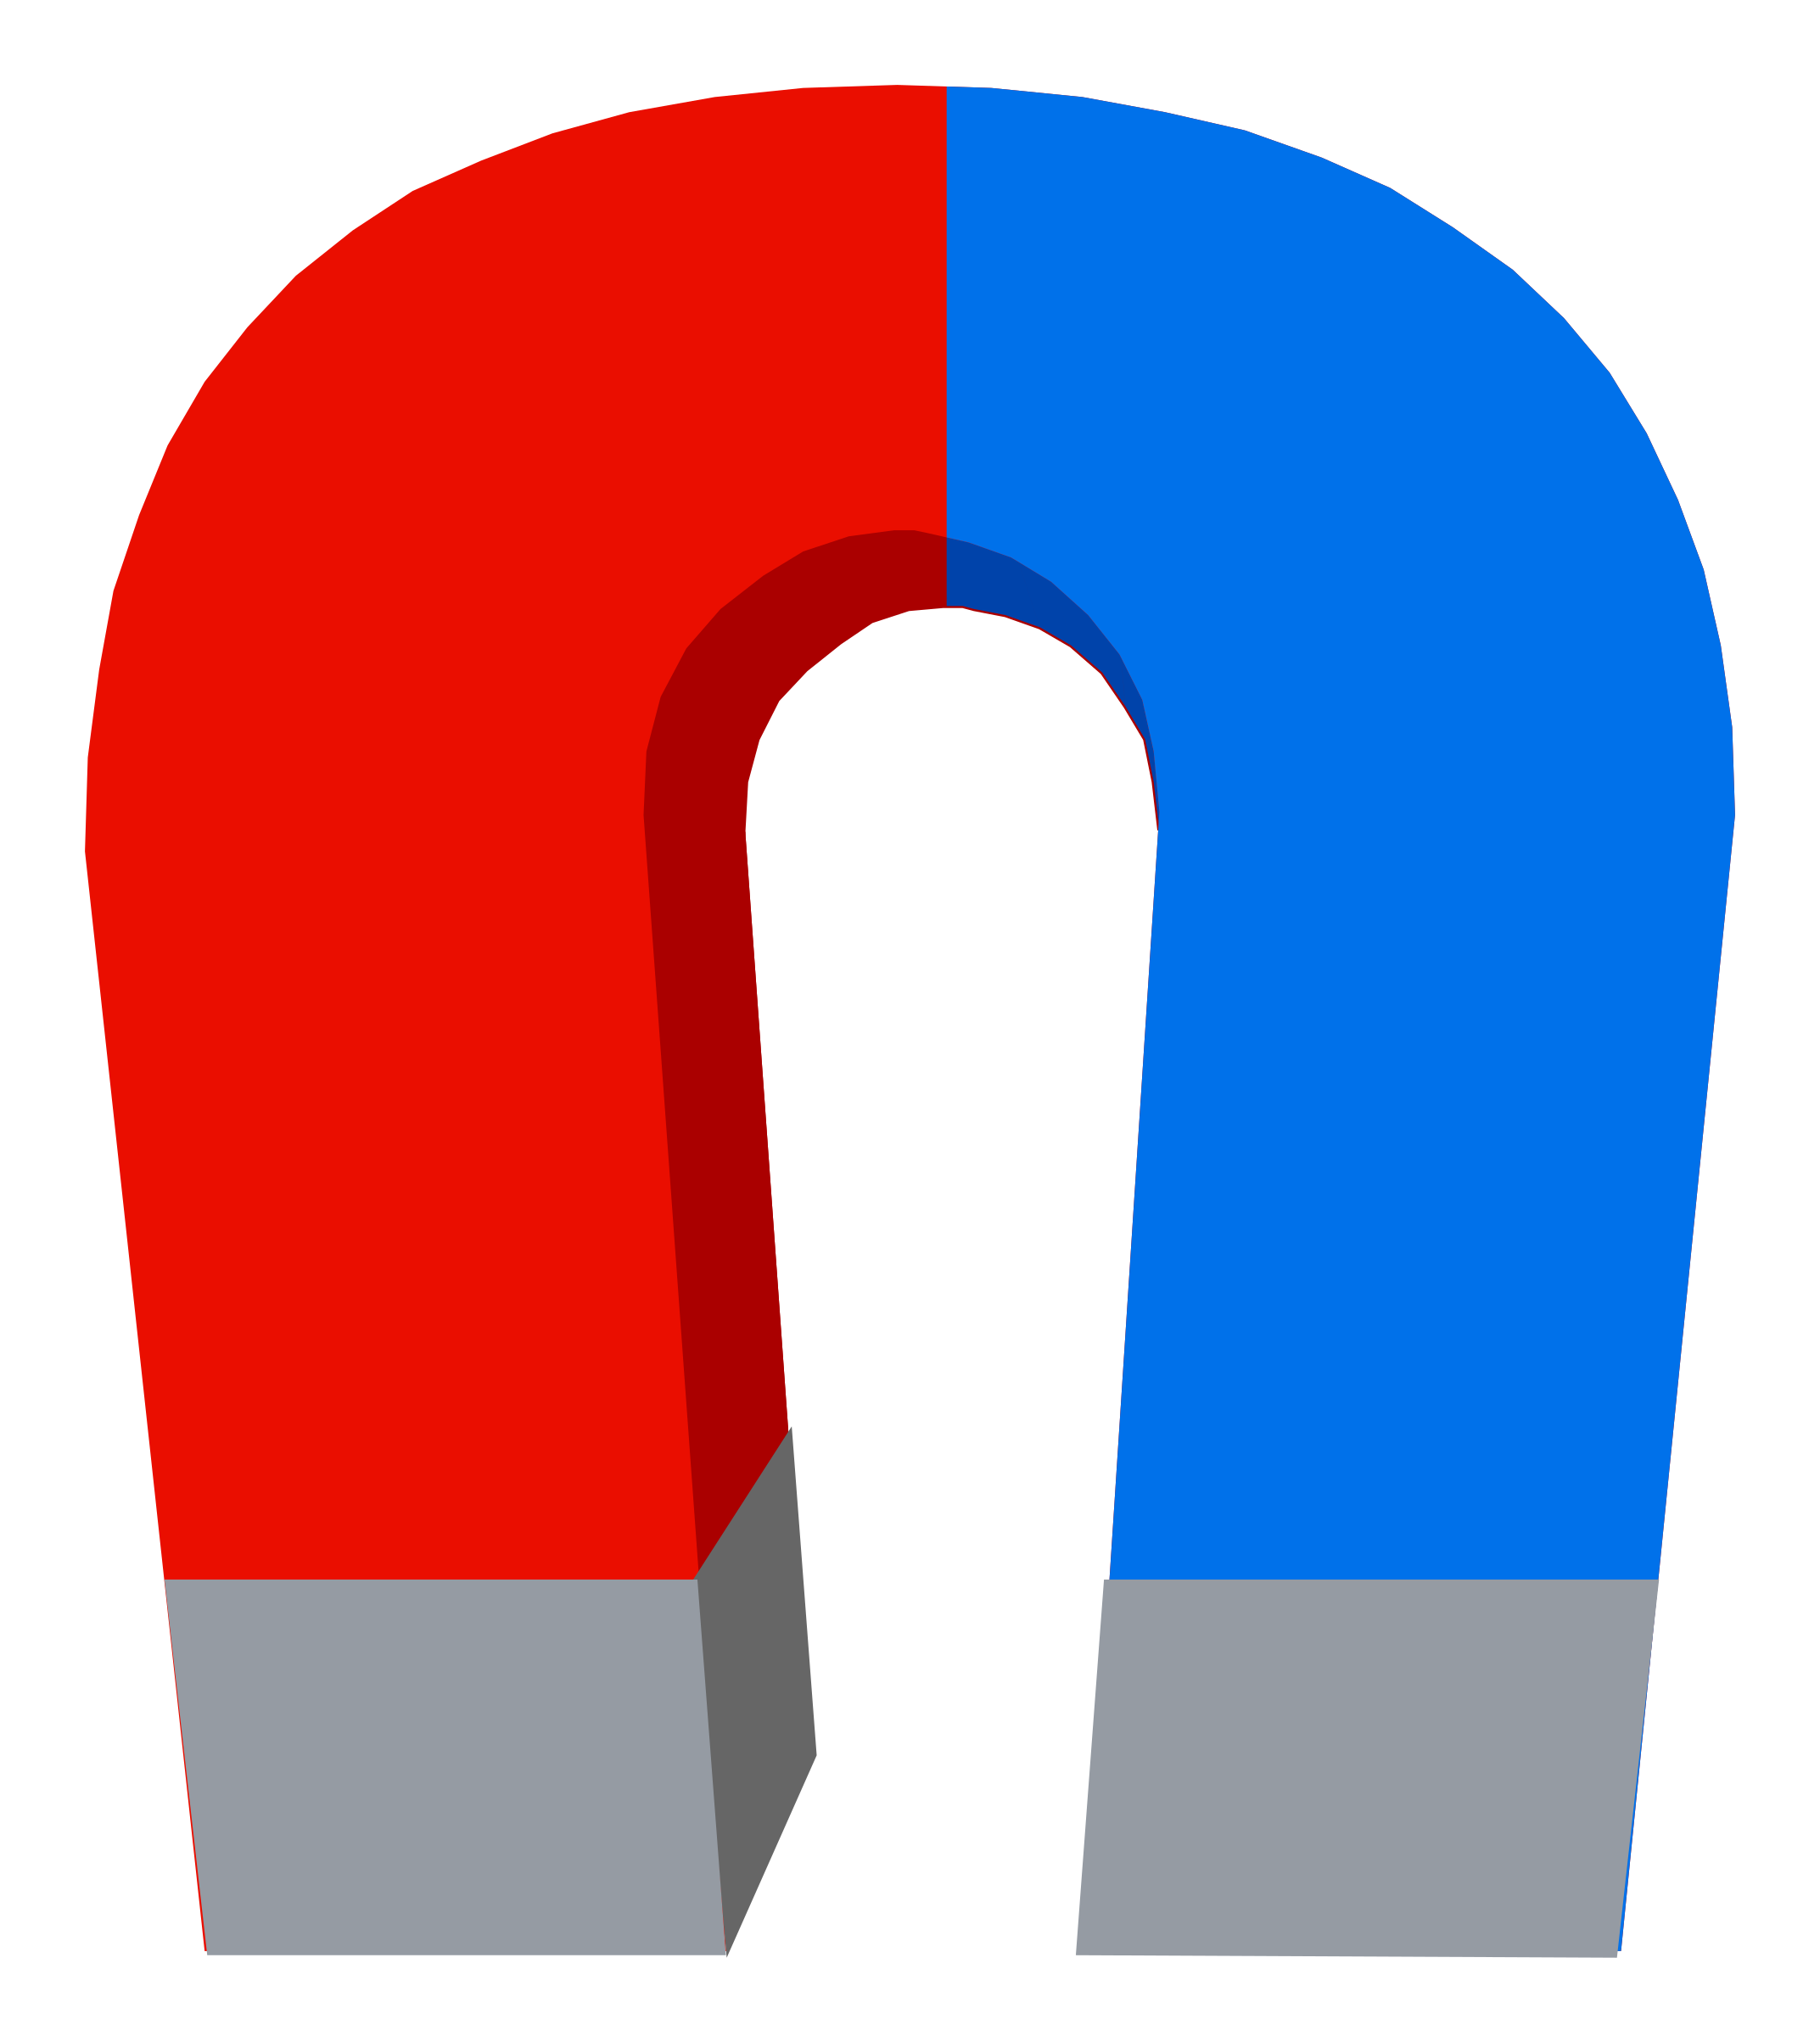 Red and blue magnet vector clipart. Graphic by someyoutuber. - Magnet HD PNG - Magnet PNG HD